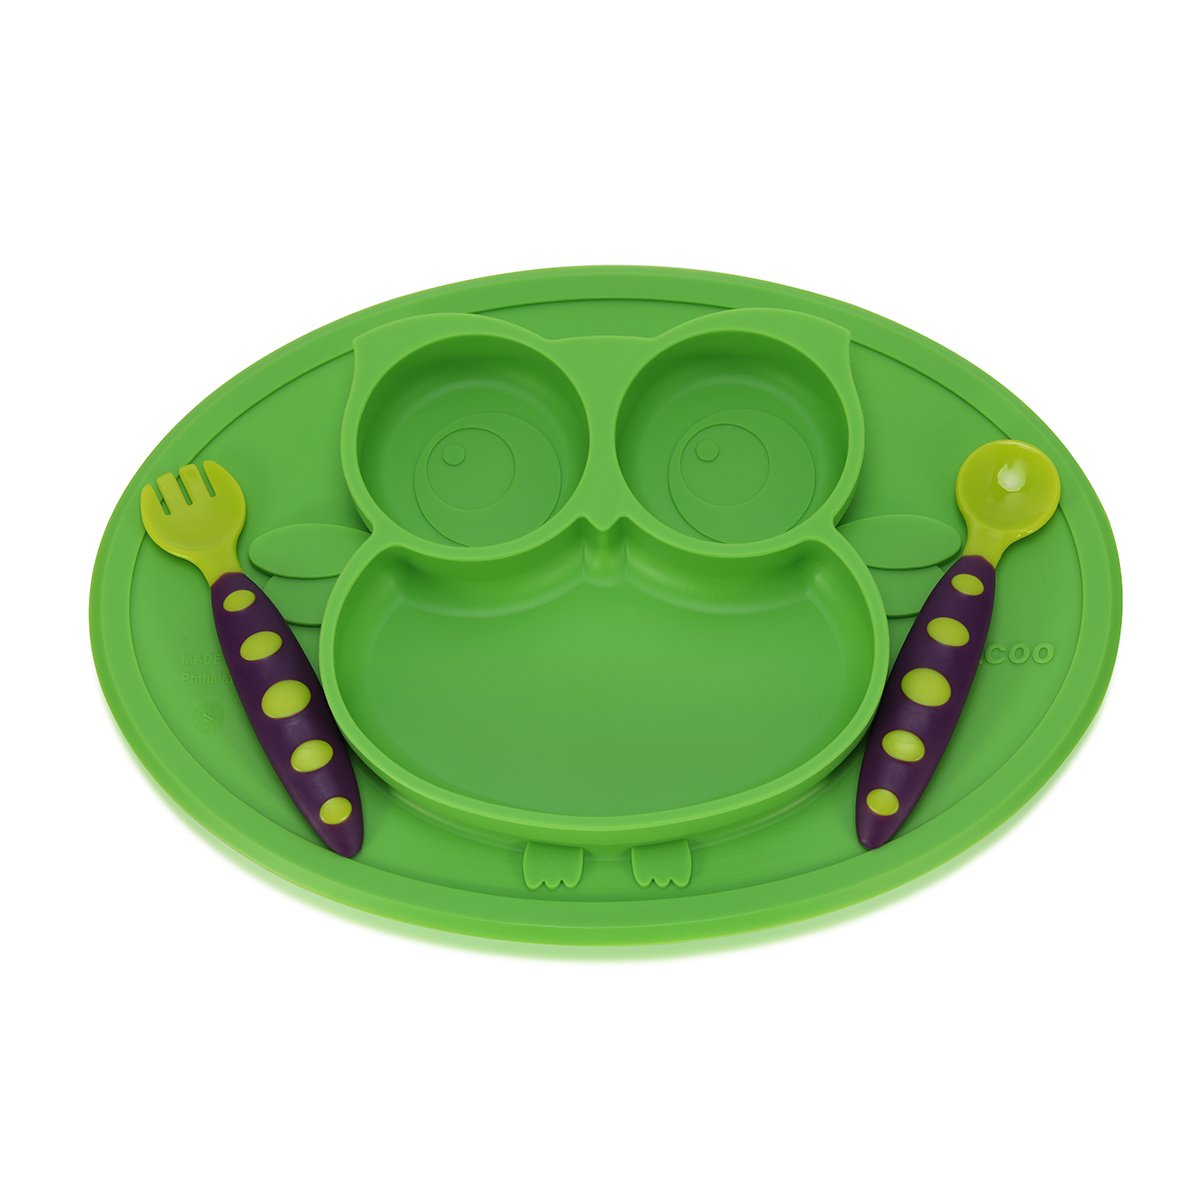 Baby Silicone Placemat Feeding Set Kirecoo Owl Plates Built in Plate and Bowl + One Utensil Baby Fork and Spoon Set with Travel Case for Early Promotes Independence (Green)